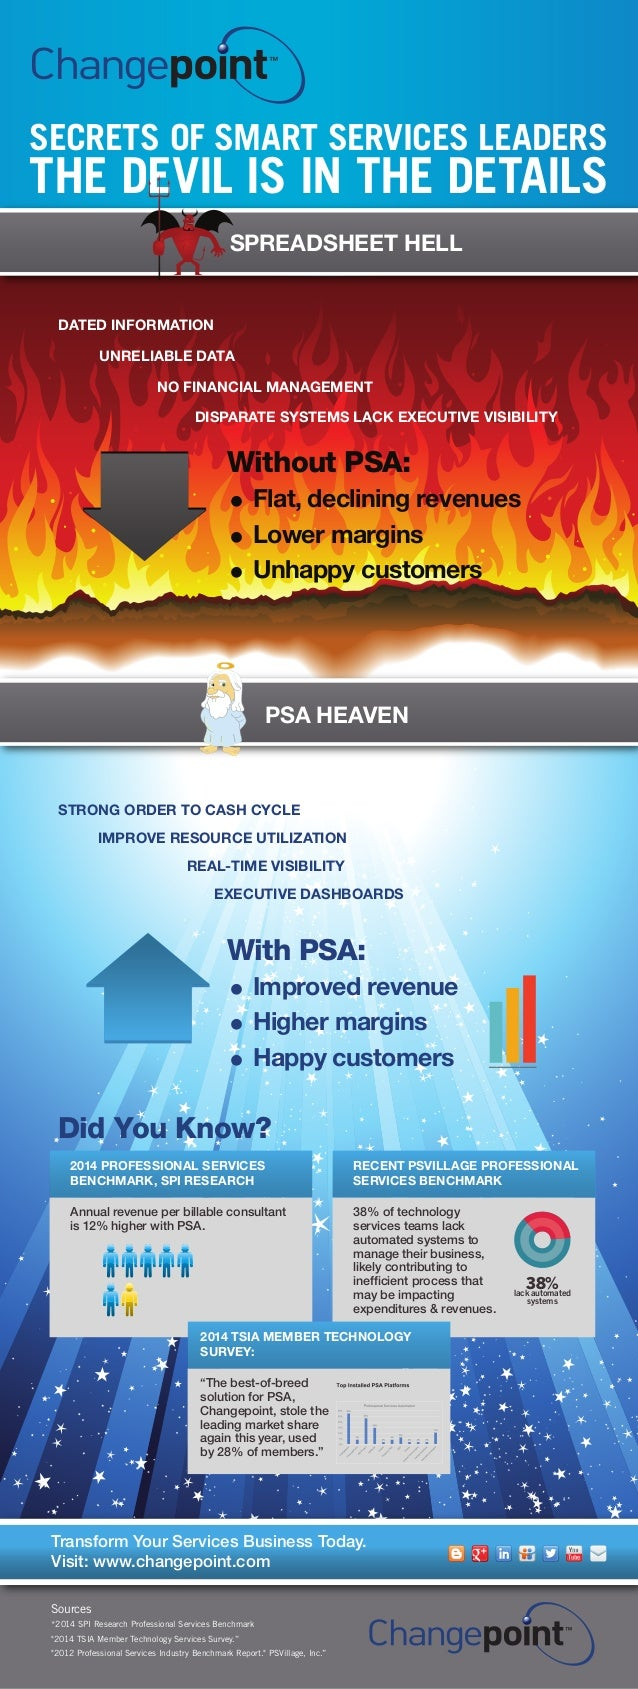 PSA HEAVEN SPREADSHEET HELL SECRETS OF SMART SERVICES LEADERS THE DEVIL IS IN THE DETAILS Sources *2014 SPI Research Profe...